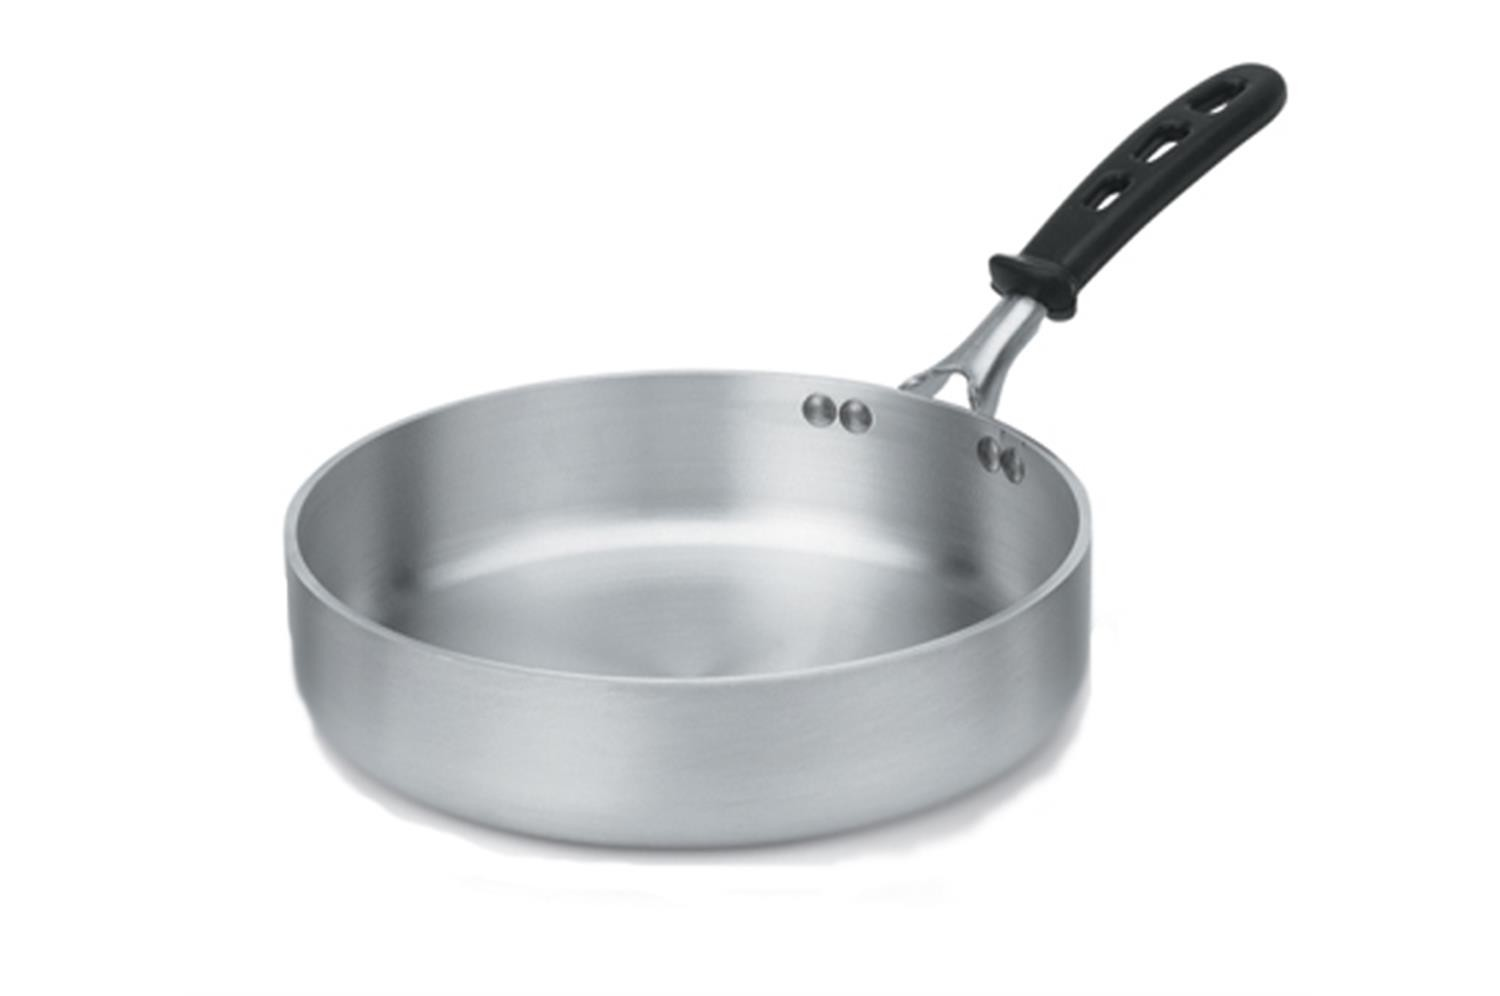 Vollrath 68733 Heavy Duty Aluminum 3 Qt Saute Pan